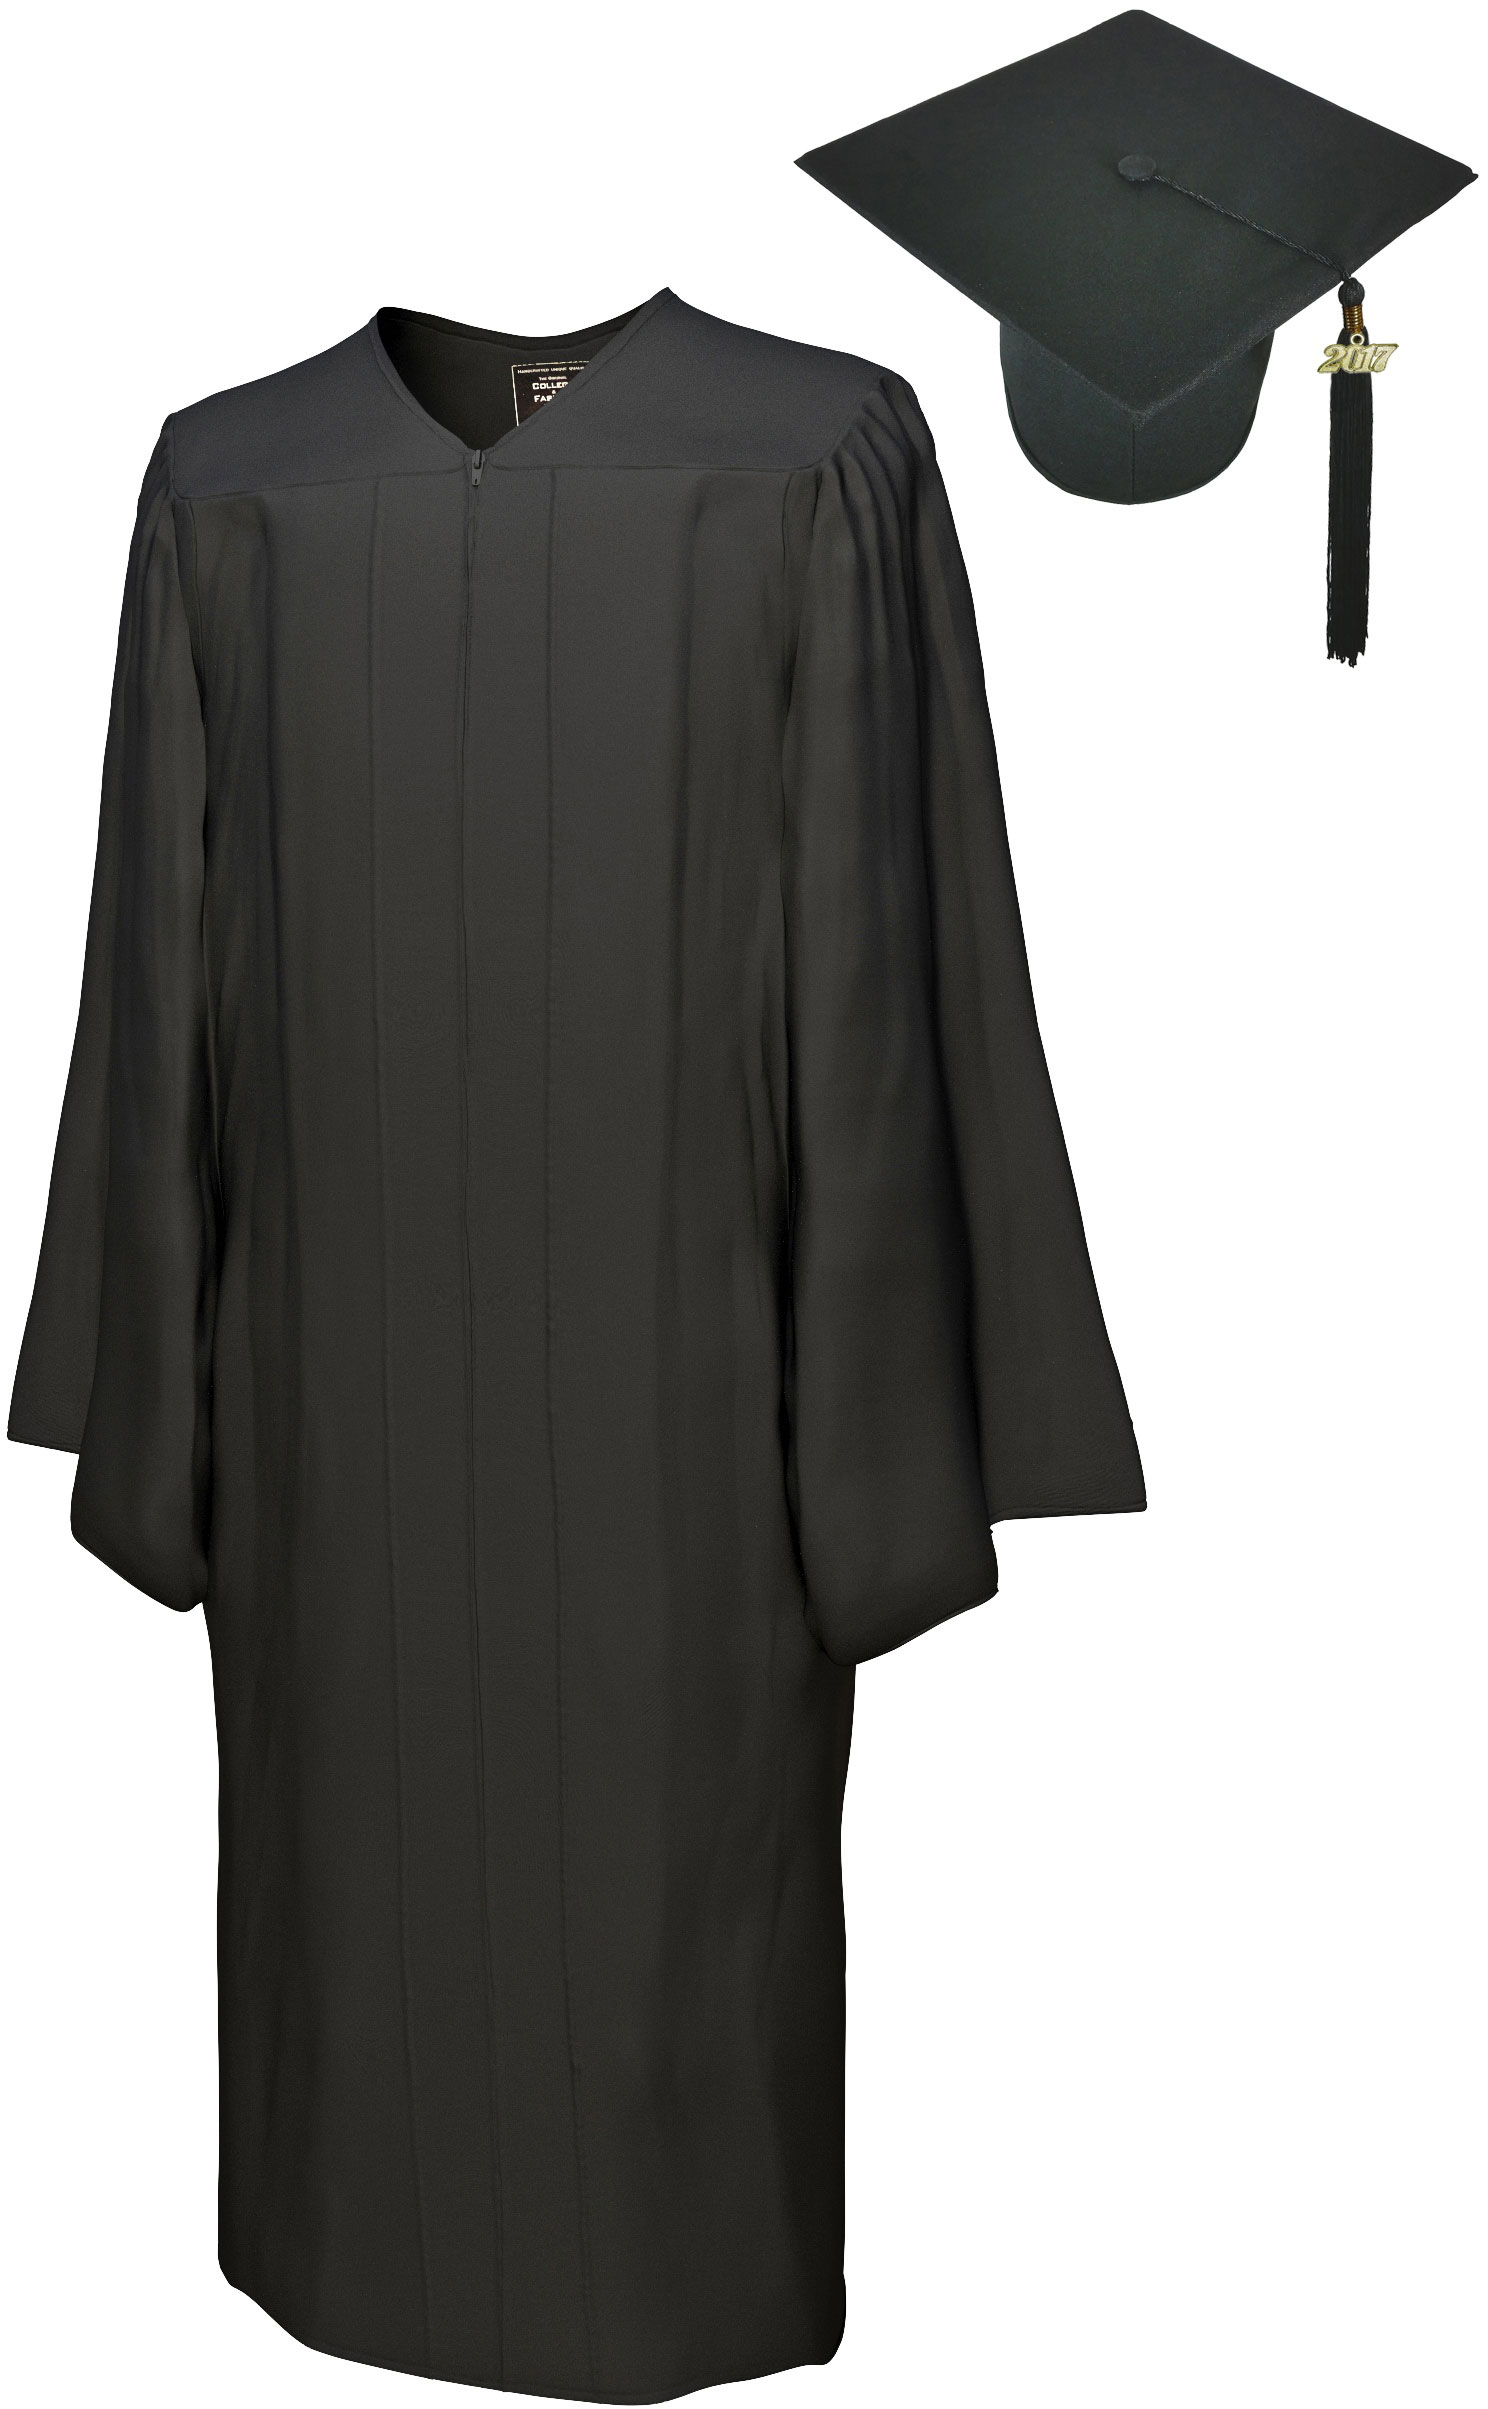 GO GREEN BLACK CAP & GOWN BACHELOR GRADUATION SET-rs4250582400729